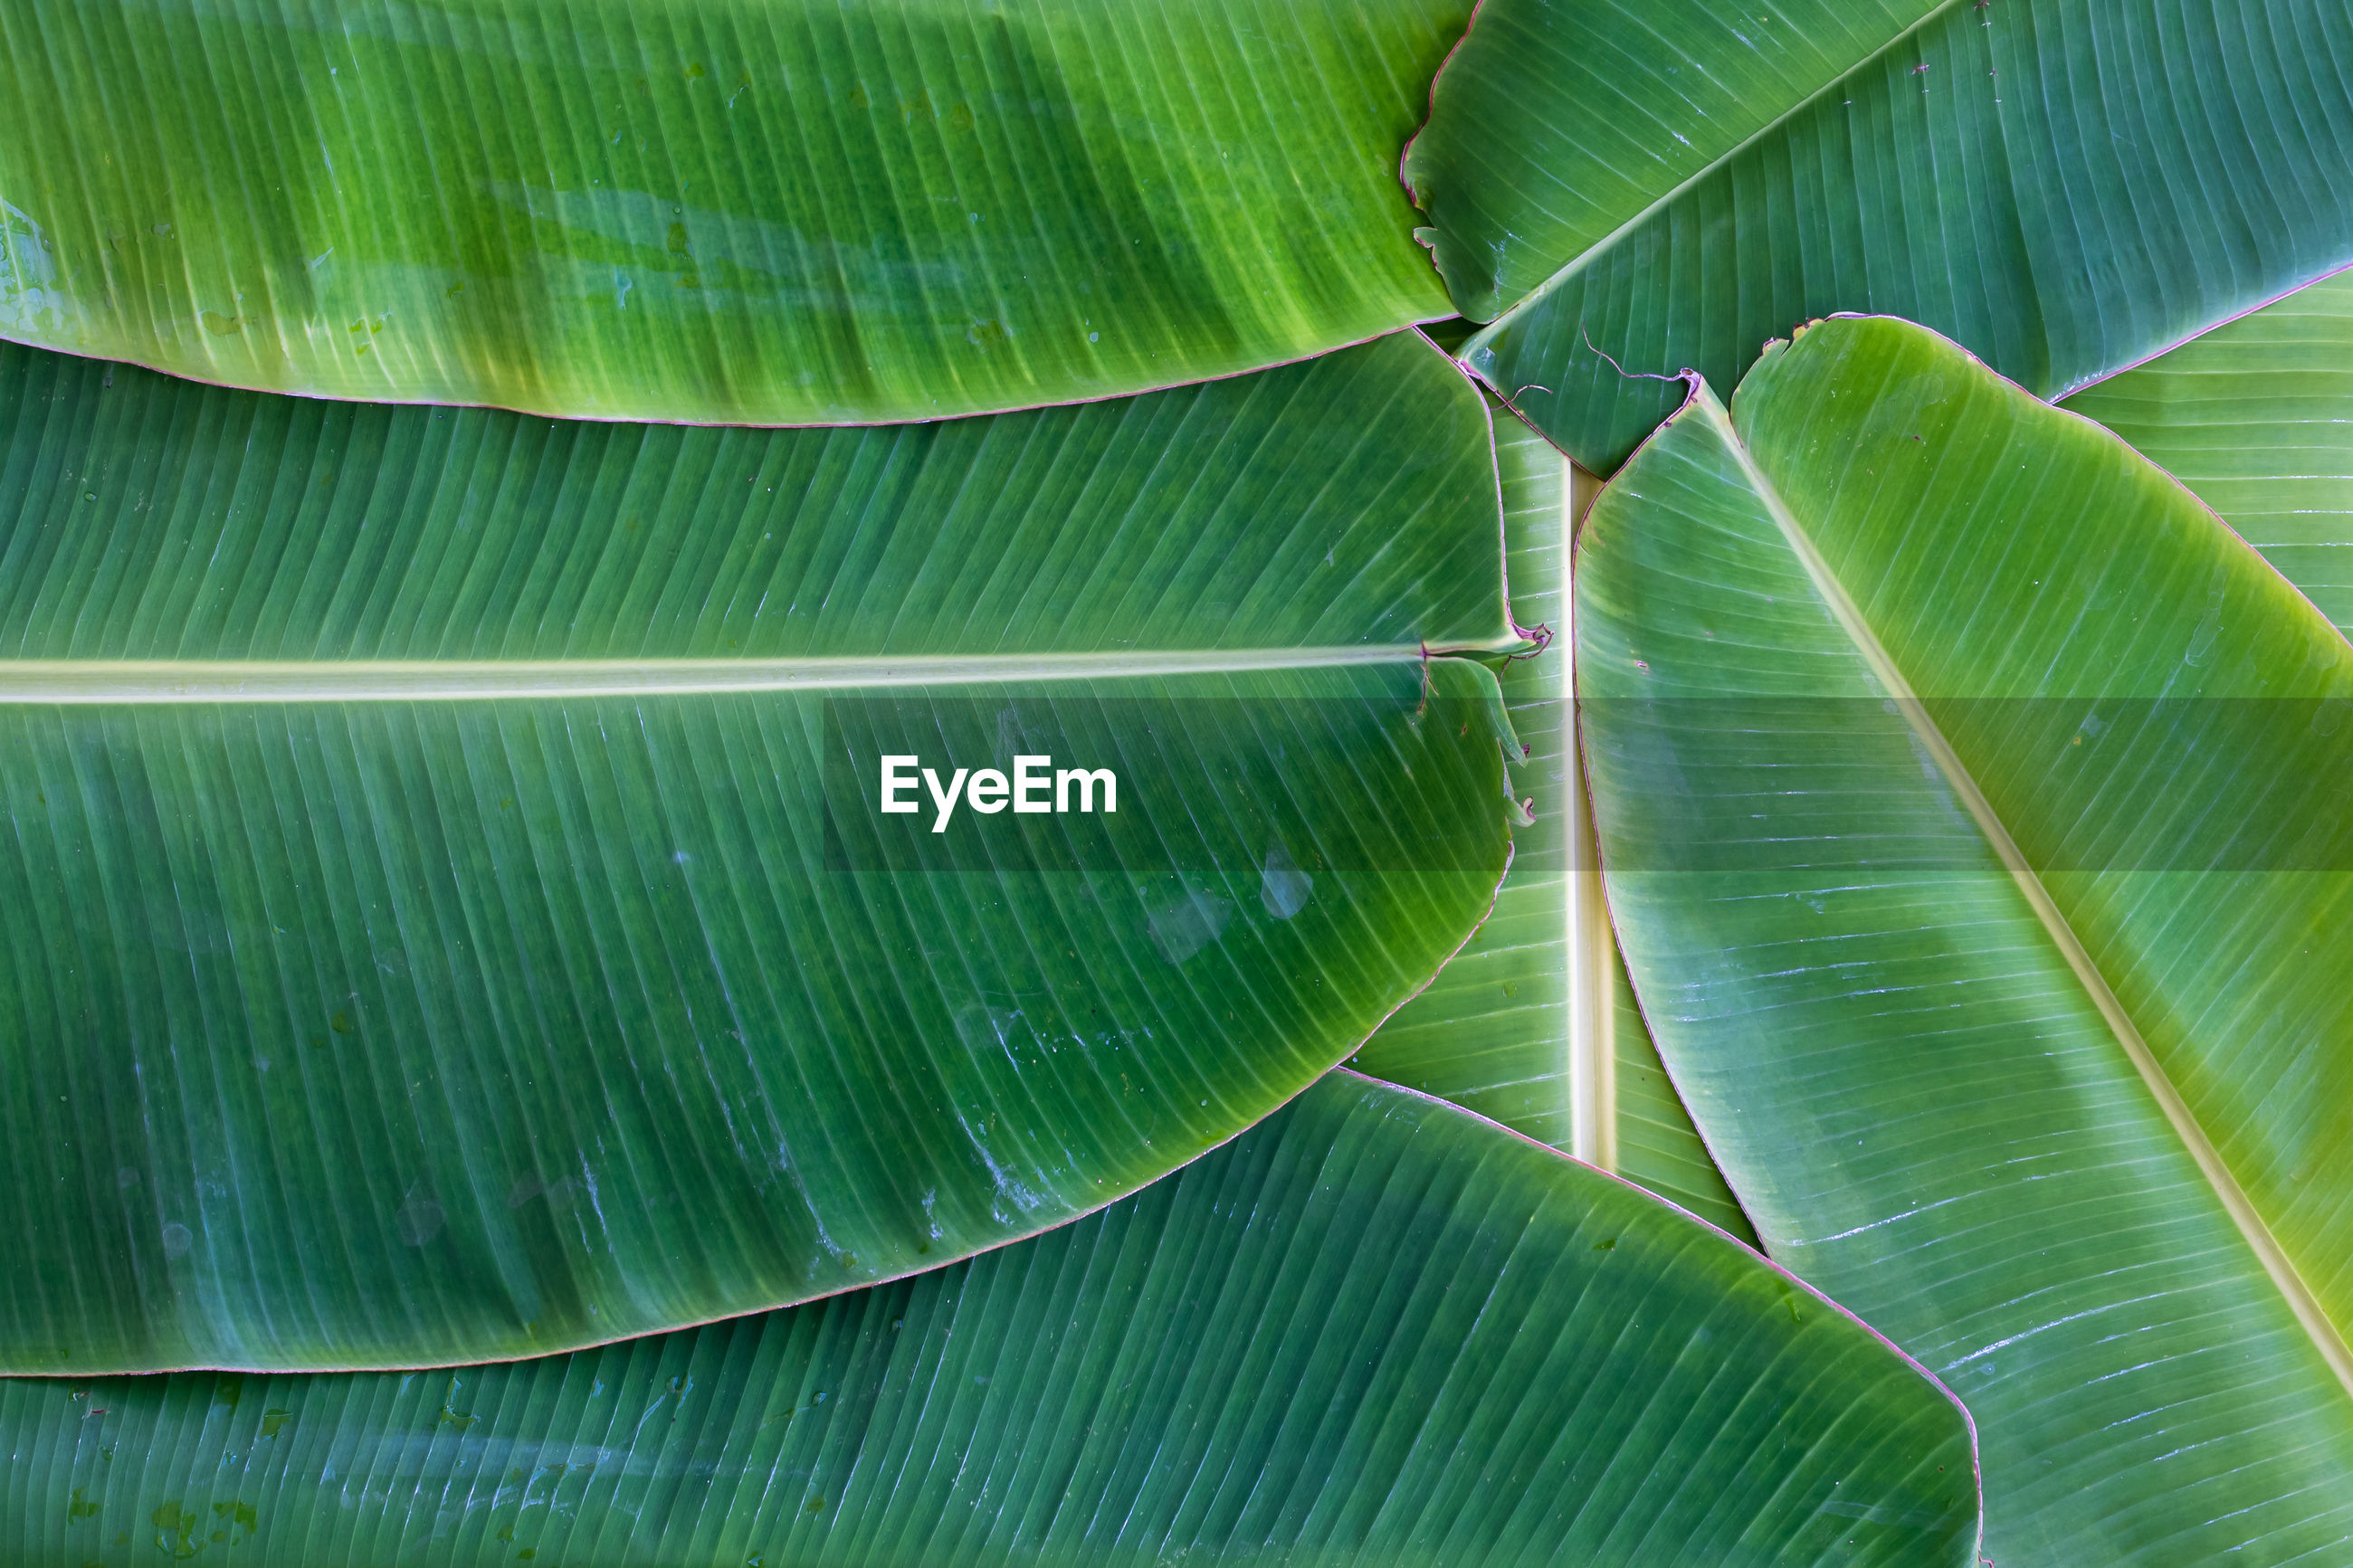 FULL FRAME SHOT OF PALM LEAF WITH TREE